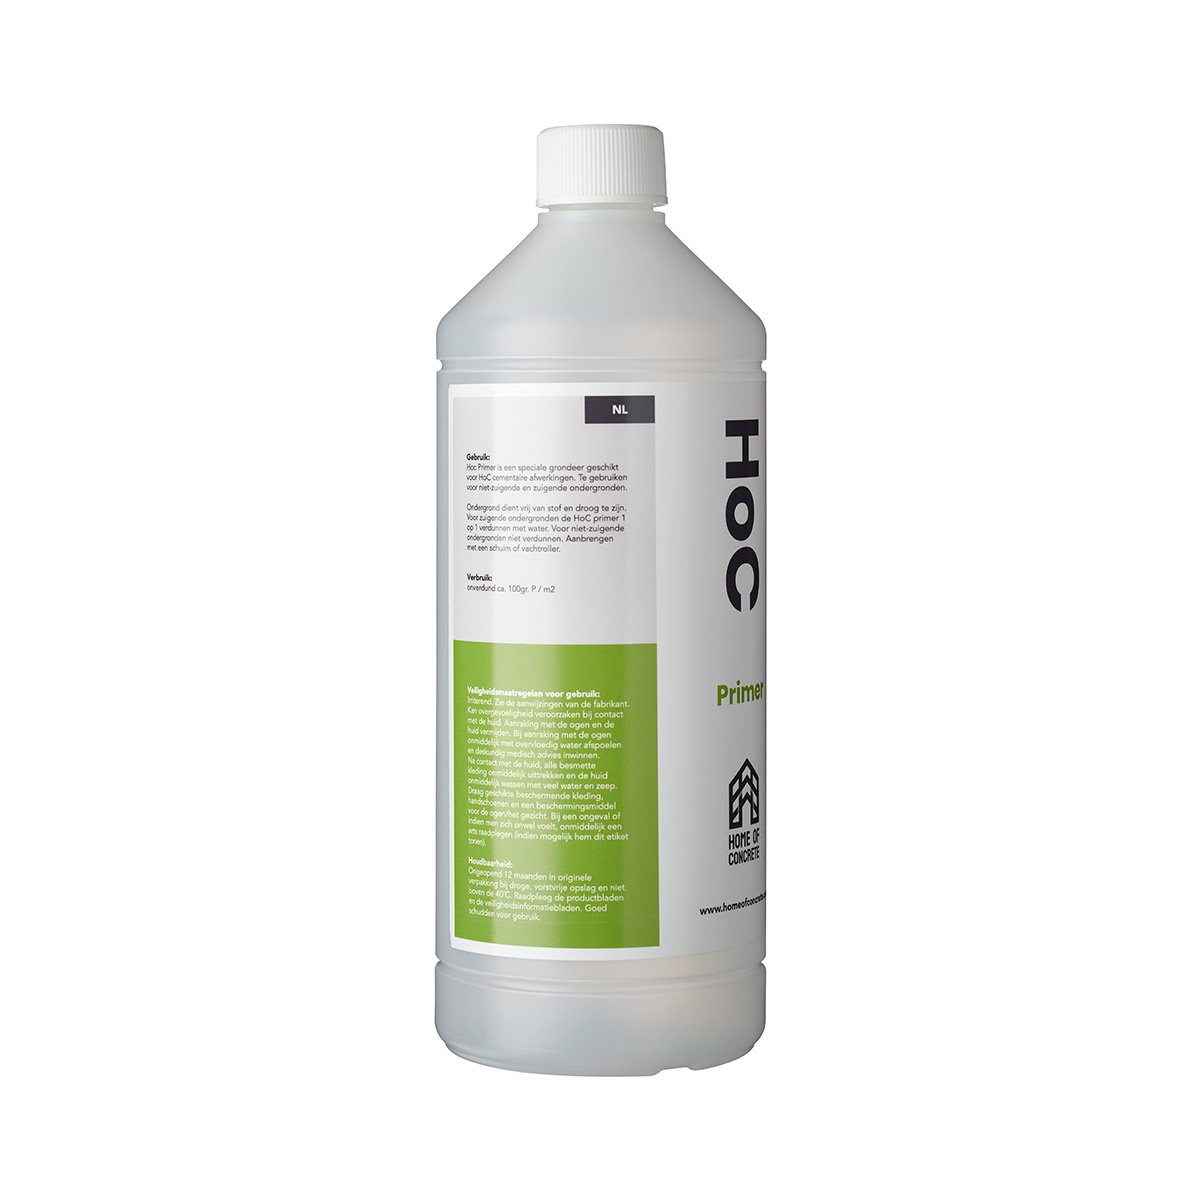 Home of Concrete HoC Primer | Primer suitable for HoC cementary finishes